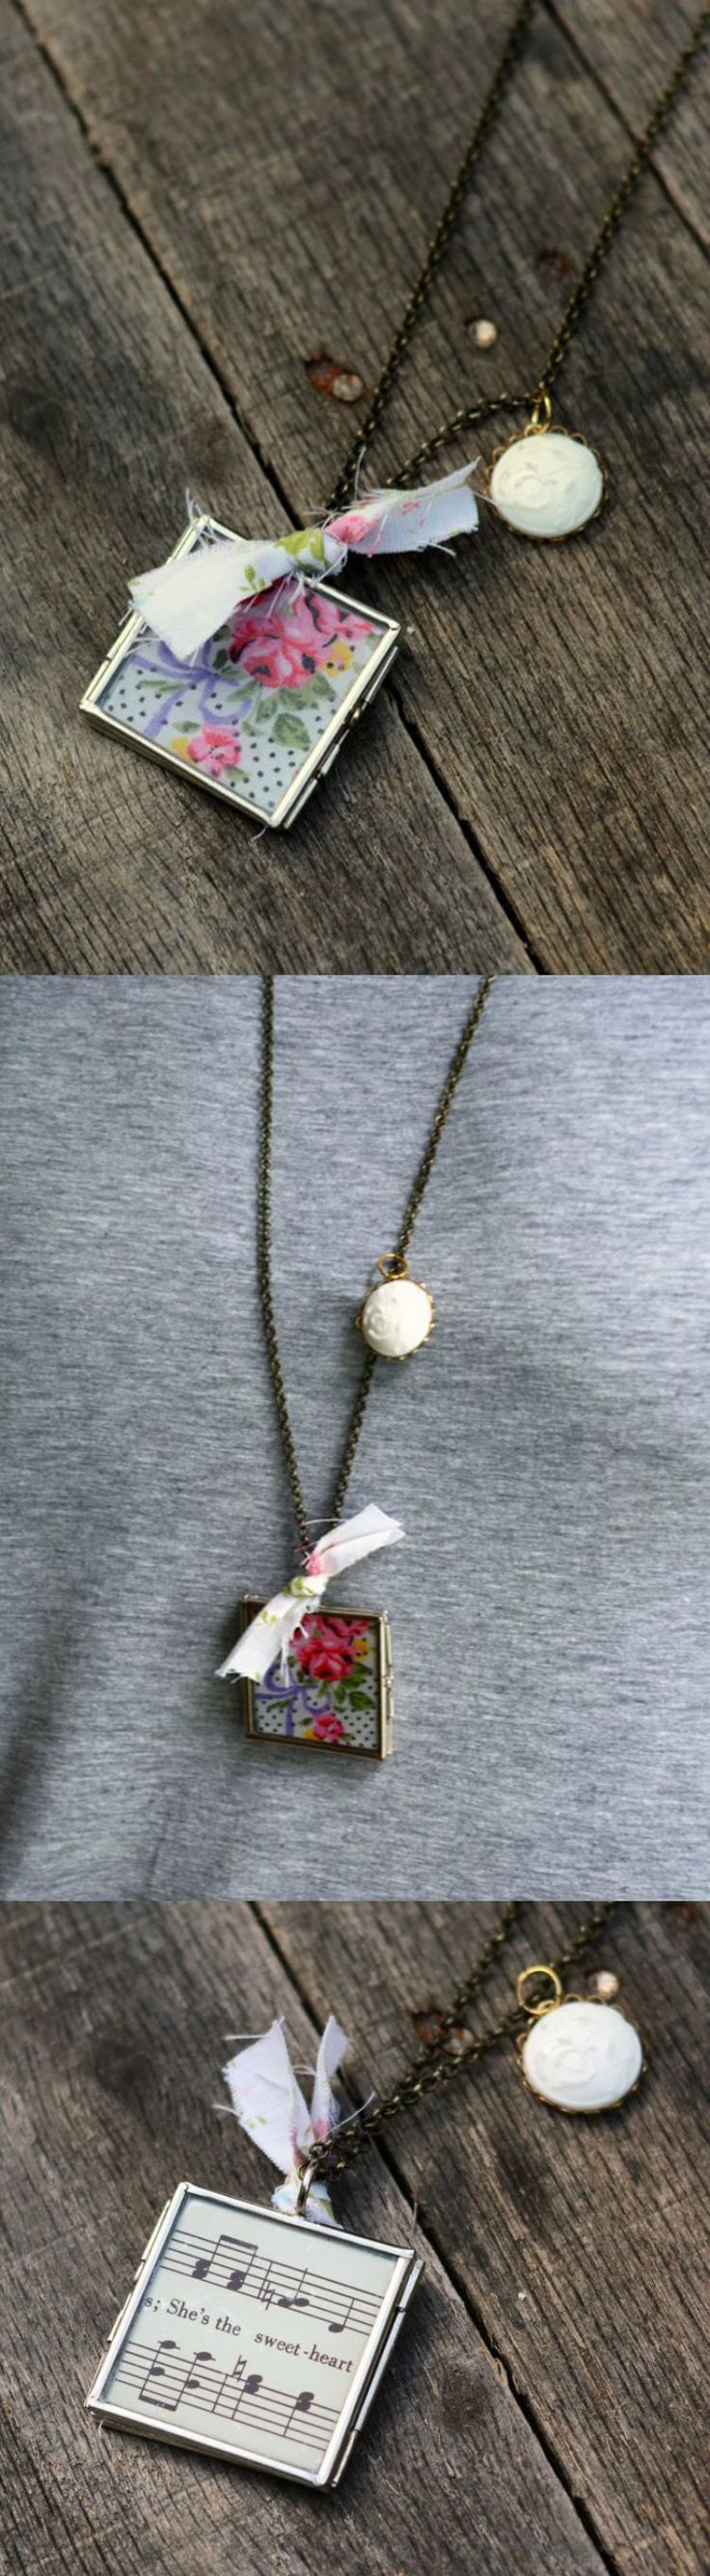 This pretty locket was embellished with a vintage hanky and some sheet music - it makes the perfect personalized gift!